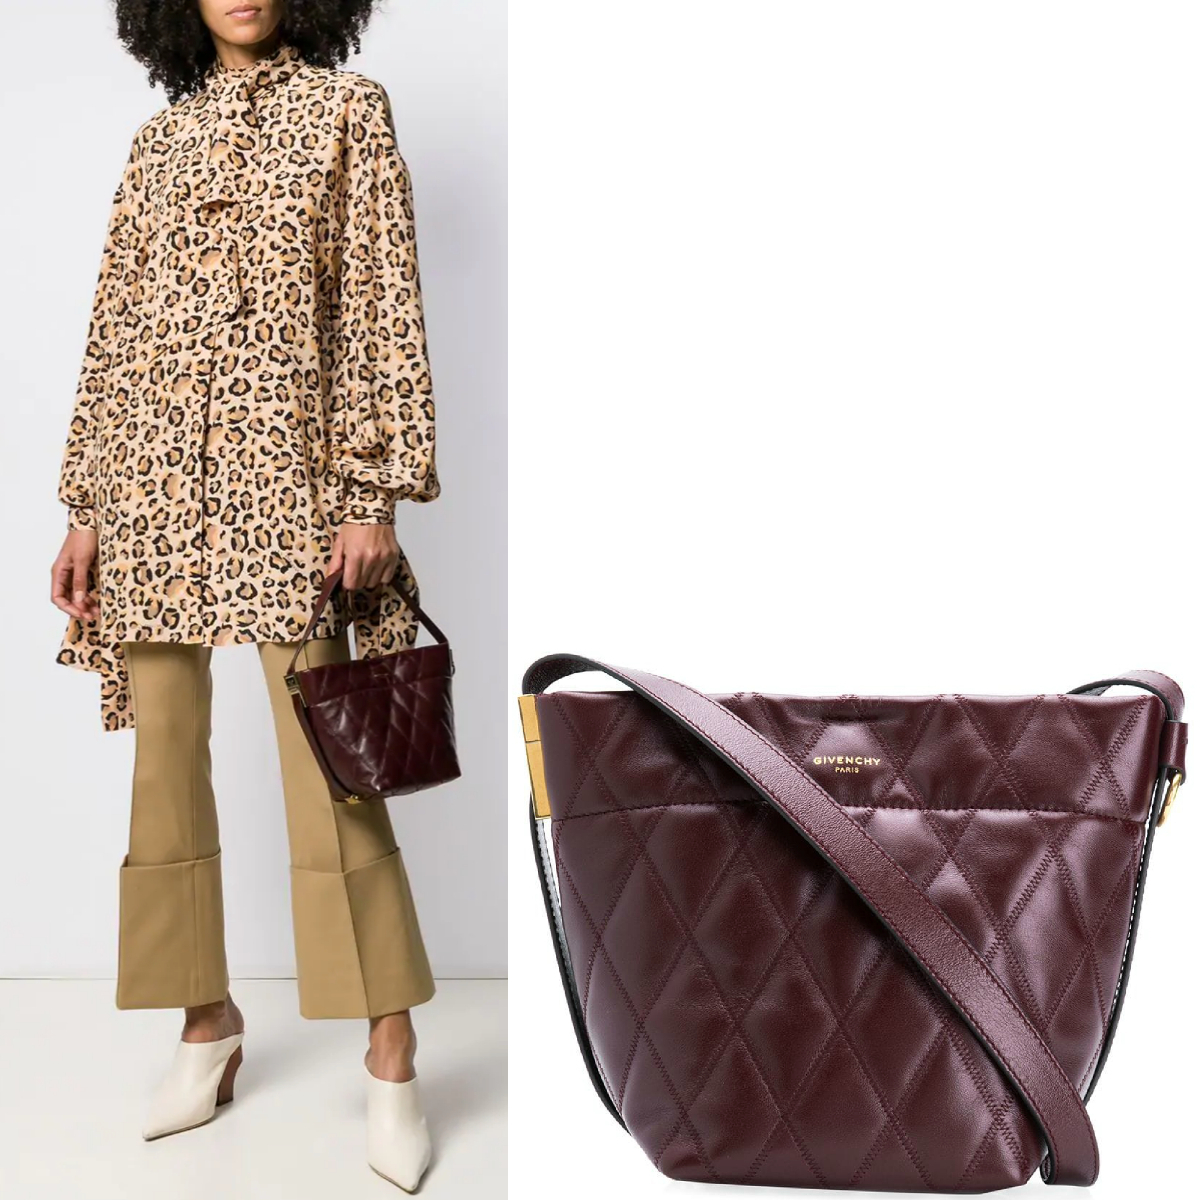 19SS G427 MINI GV BUCKET BAG IN QUILTED LEATHER (GIVENCHY/ショルダーバッグ・ポシェット) 41790771